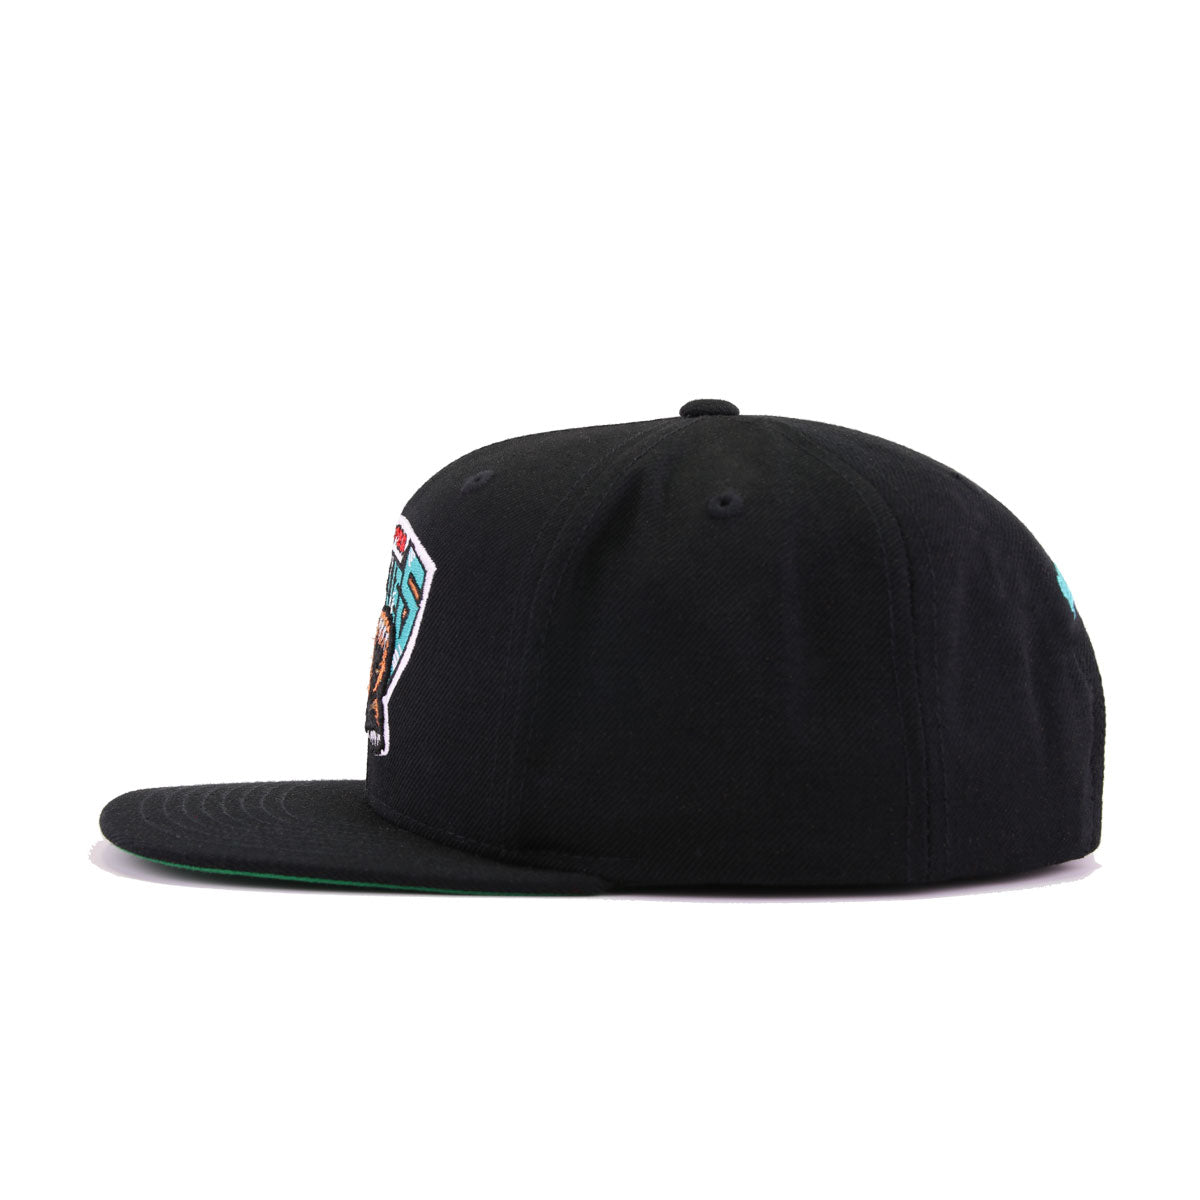 Vancouver Grizzlies Black Hardwood Classic Mitchell and Ness Snapback